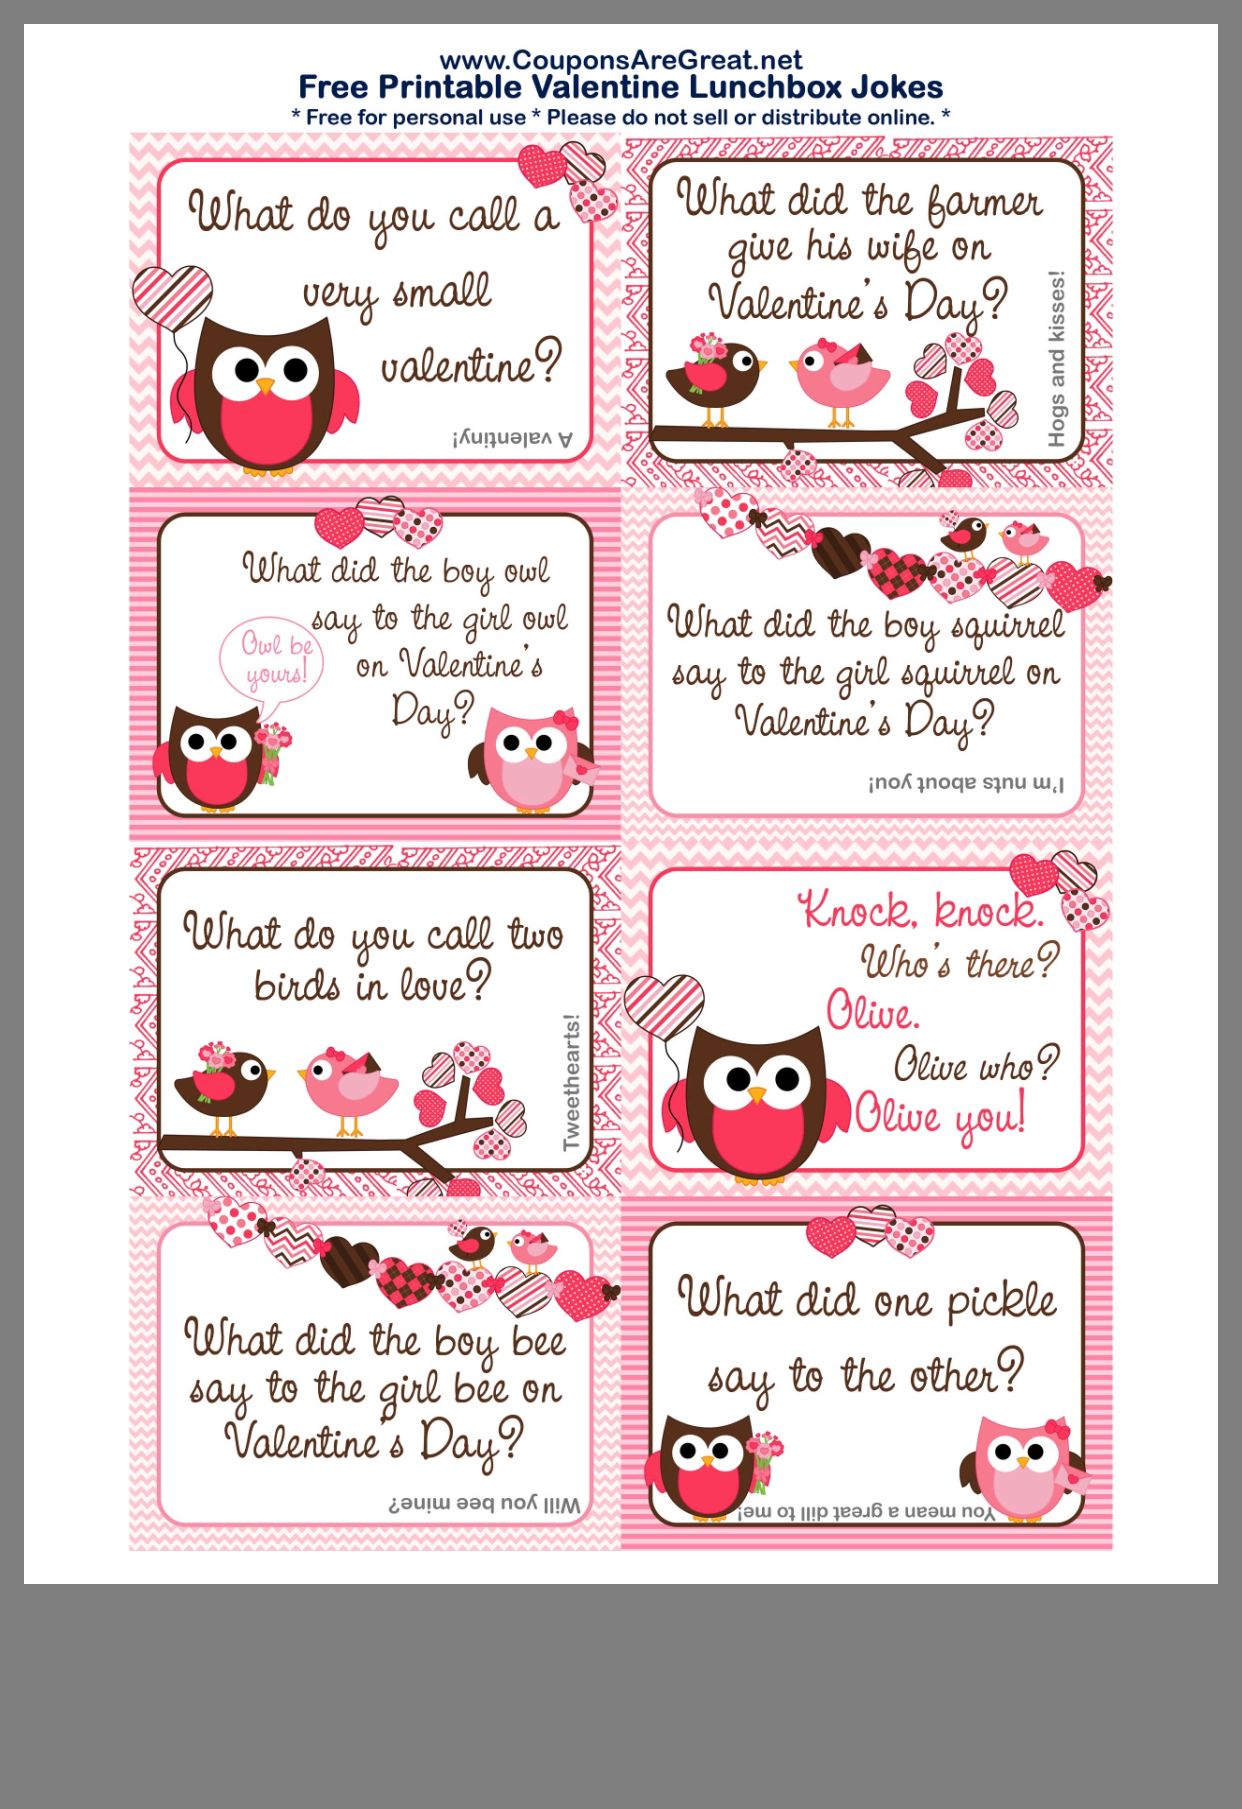 Pin by lindsey reichert on Valentine's Day Small